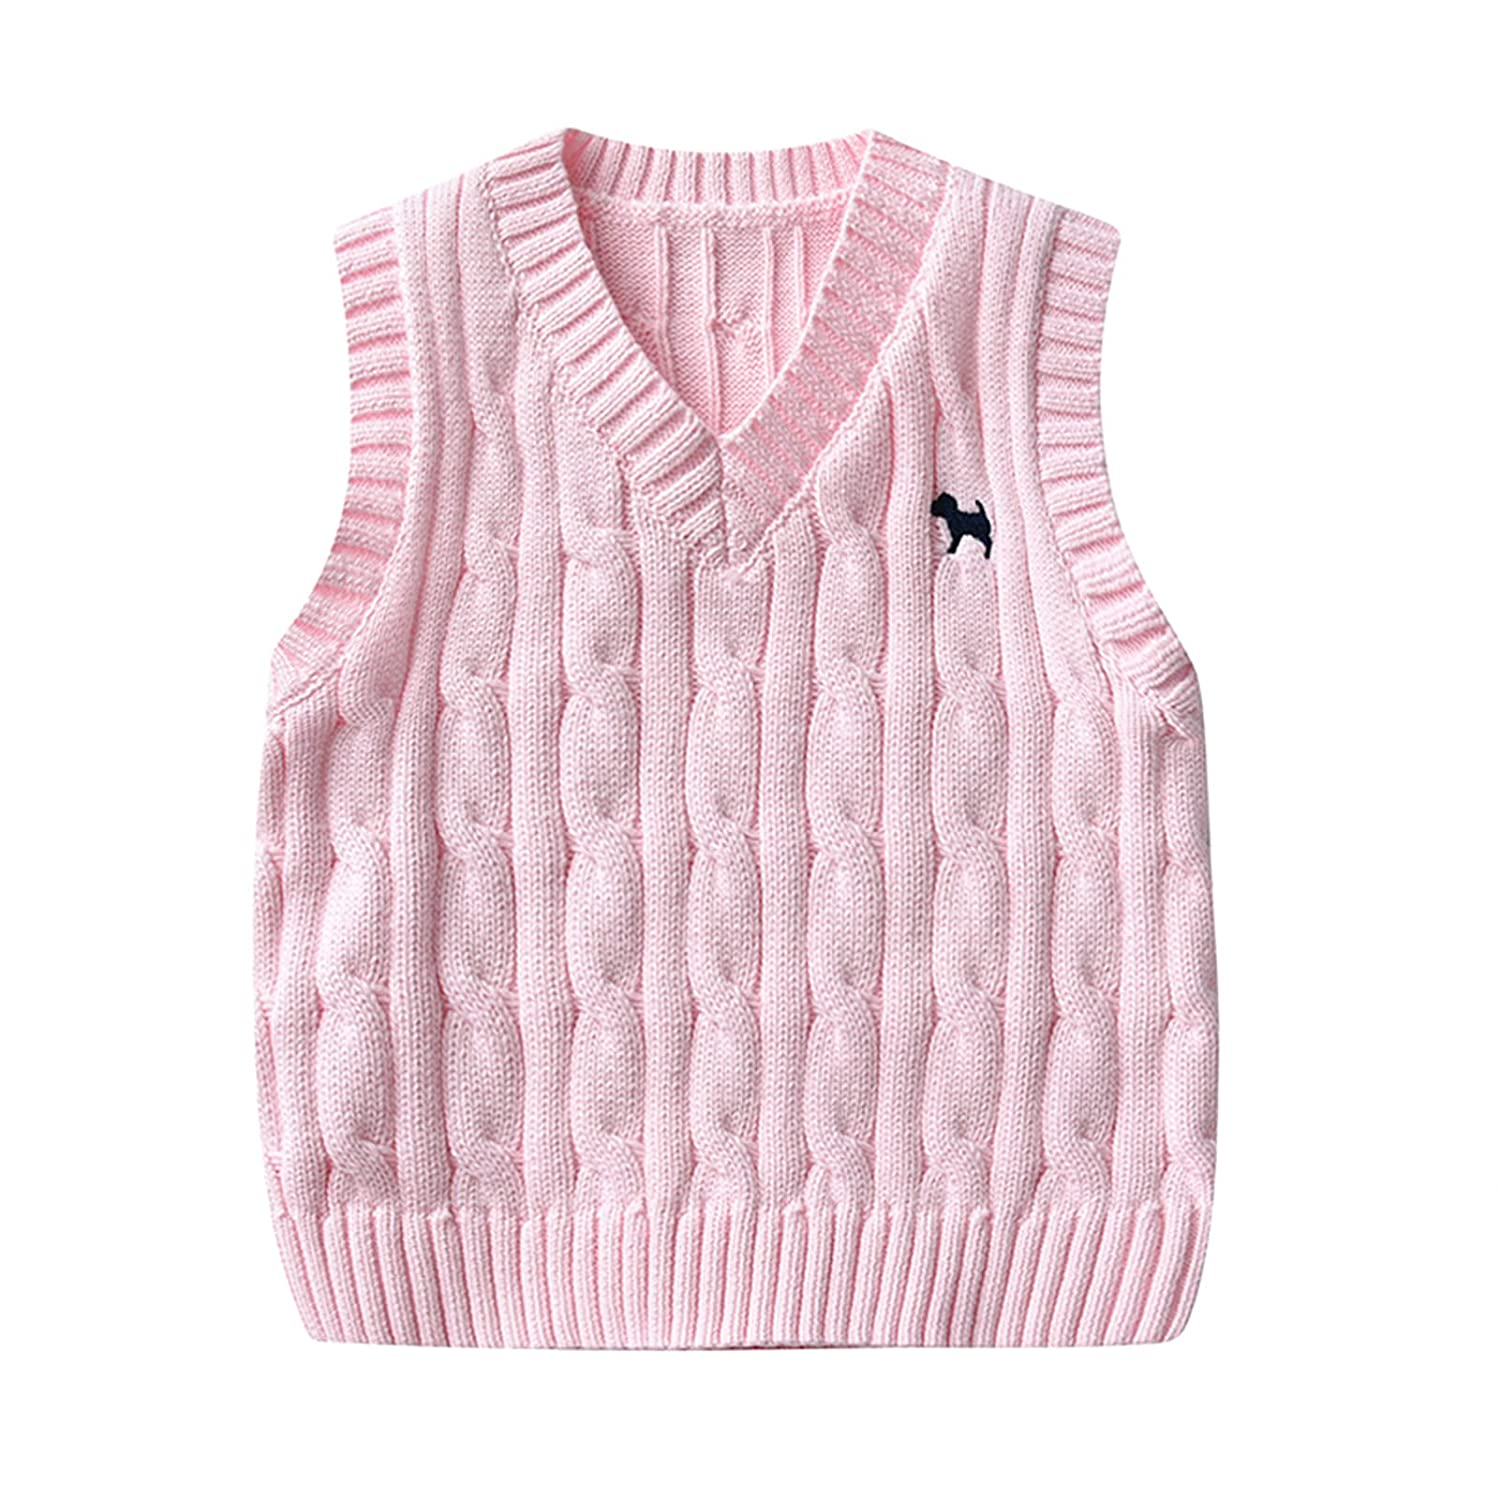 Children Sleeveless Sweater Boys Girls V Neck Knitted Vests Cotton Embroidery Doggy Pattern Kids Knitwear Jumpers,Pink 4-5 Years